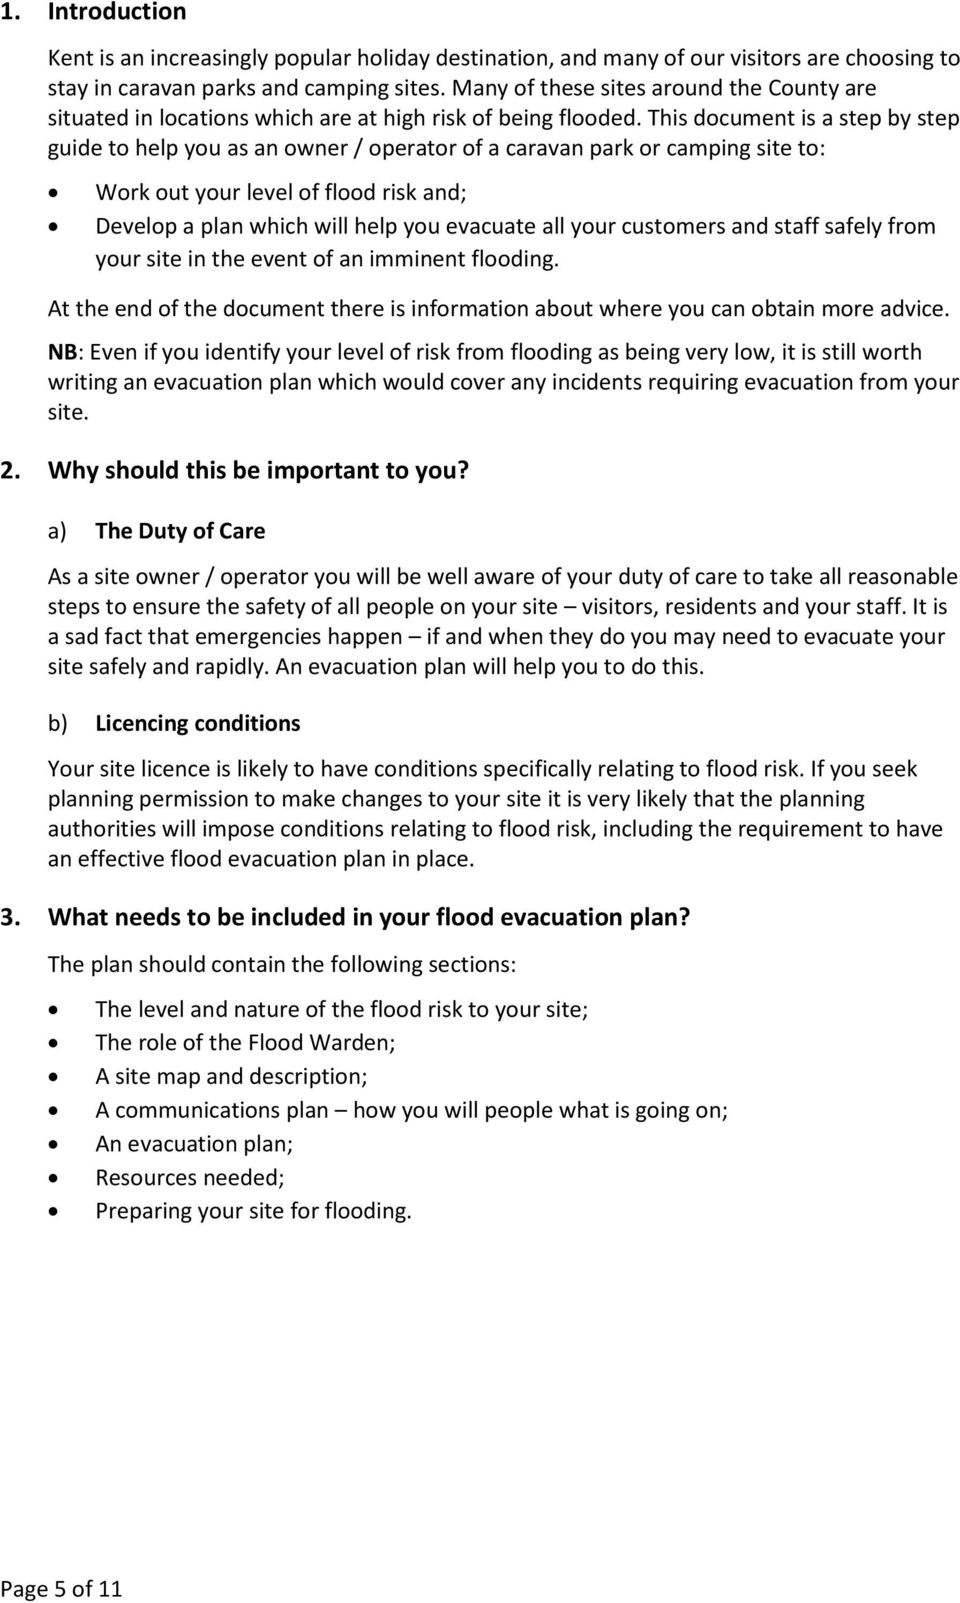 This document is a step by step guide to help you as an owner / operator of a caravan park or camping site to: Work out your level of flood risk and; Develop a plan which will help you evacuate all